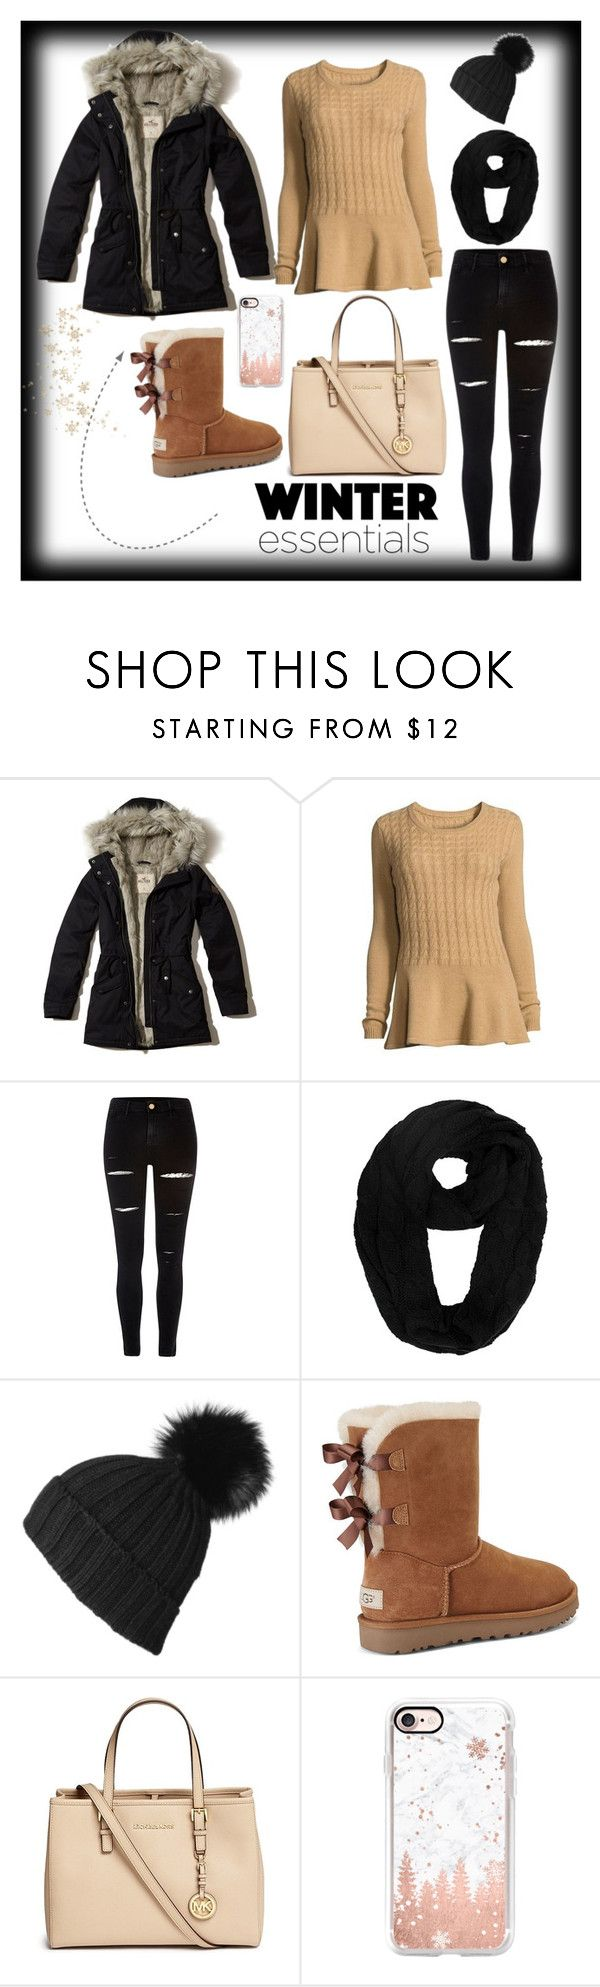 """#winter"" by ajlao ❤ liked on Polyvore featuring Hollister Co., Neiman Marcus, River Island, Black, UGG, Michael Kors and Casetify"